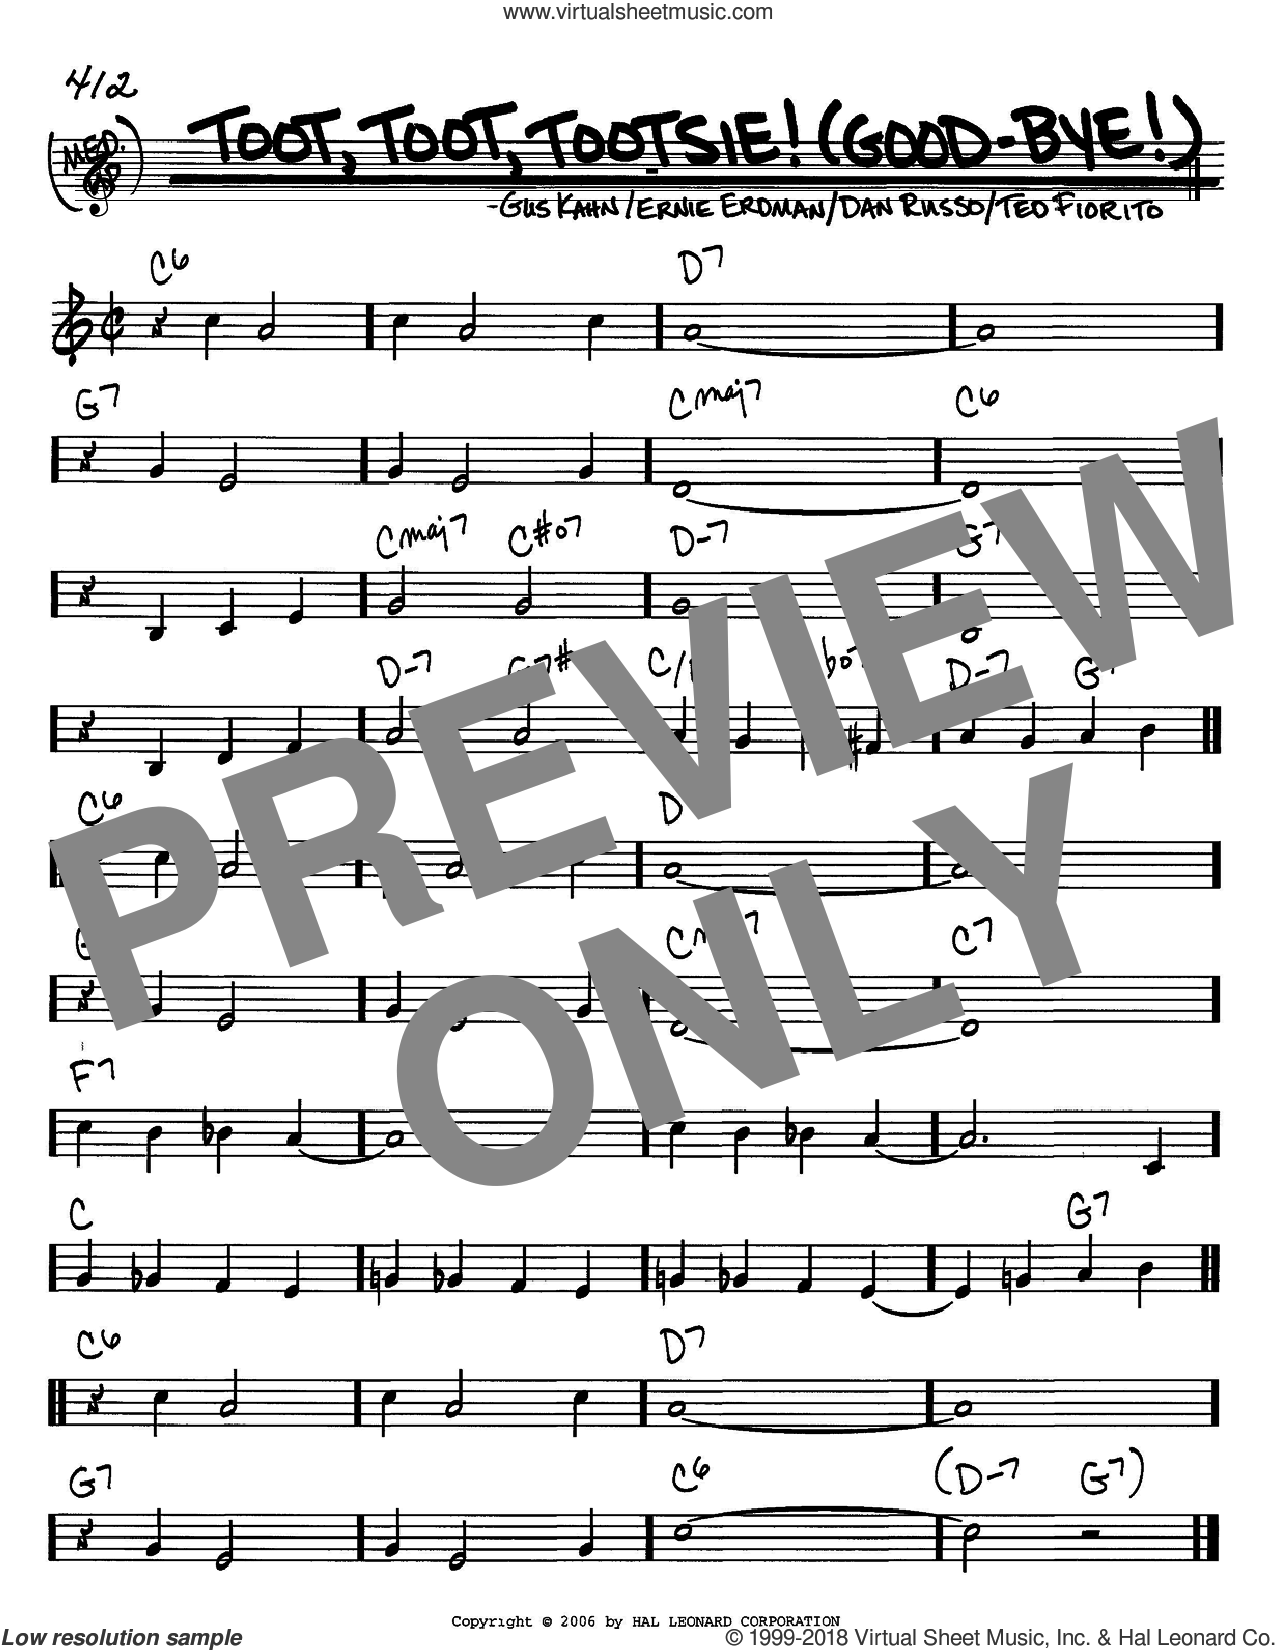 Toot, Toot, Tootsie! (Good-bye!) sheet music for voice and other instruments (C) by Ted Fiorito, Ernie Erdman and Gus Kahn. Score Image Preview.